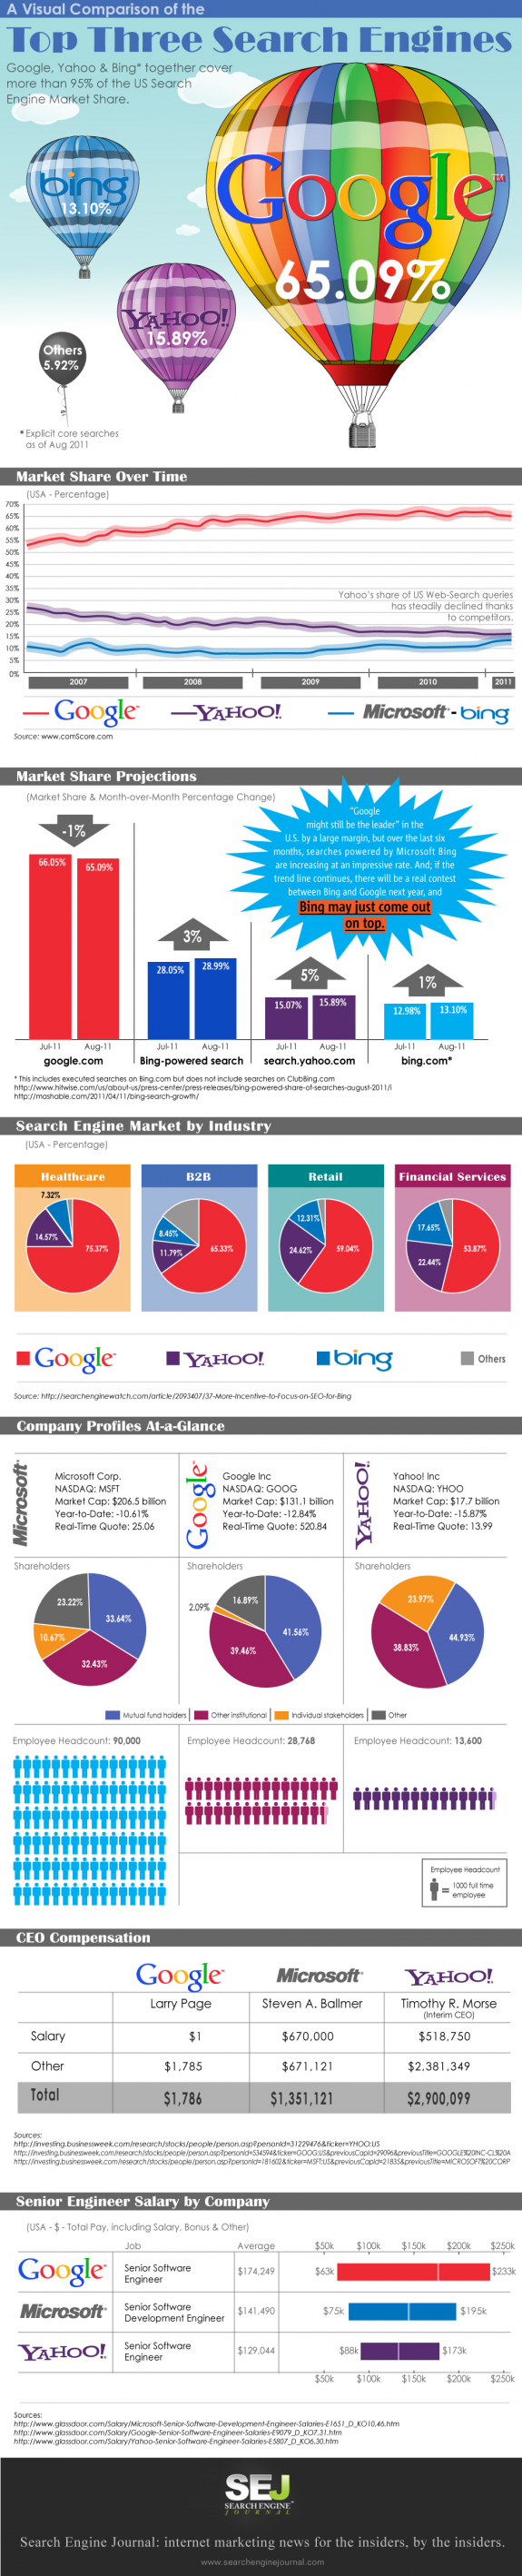 Search Engine Update The State Of Search Engines